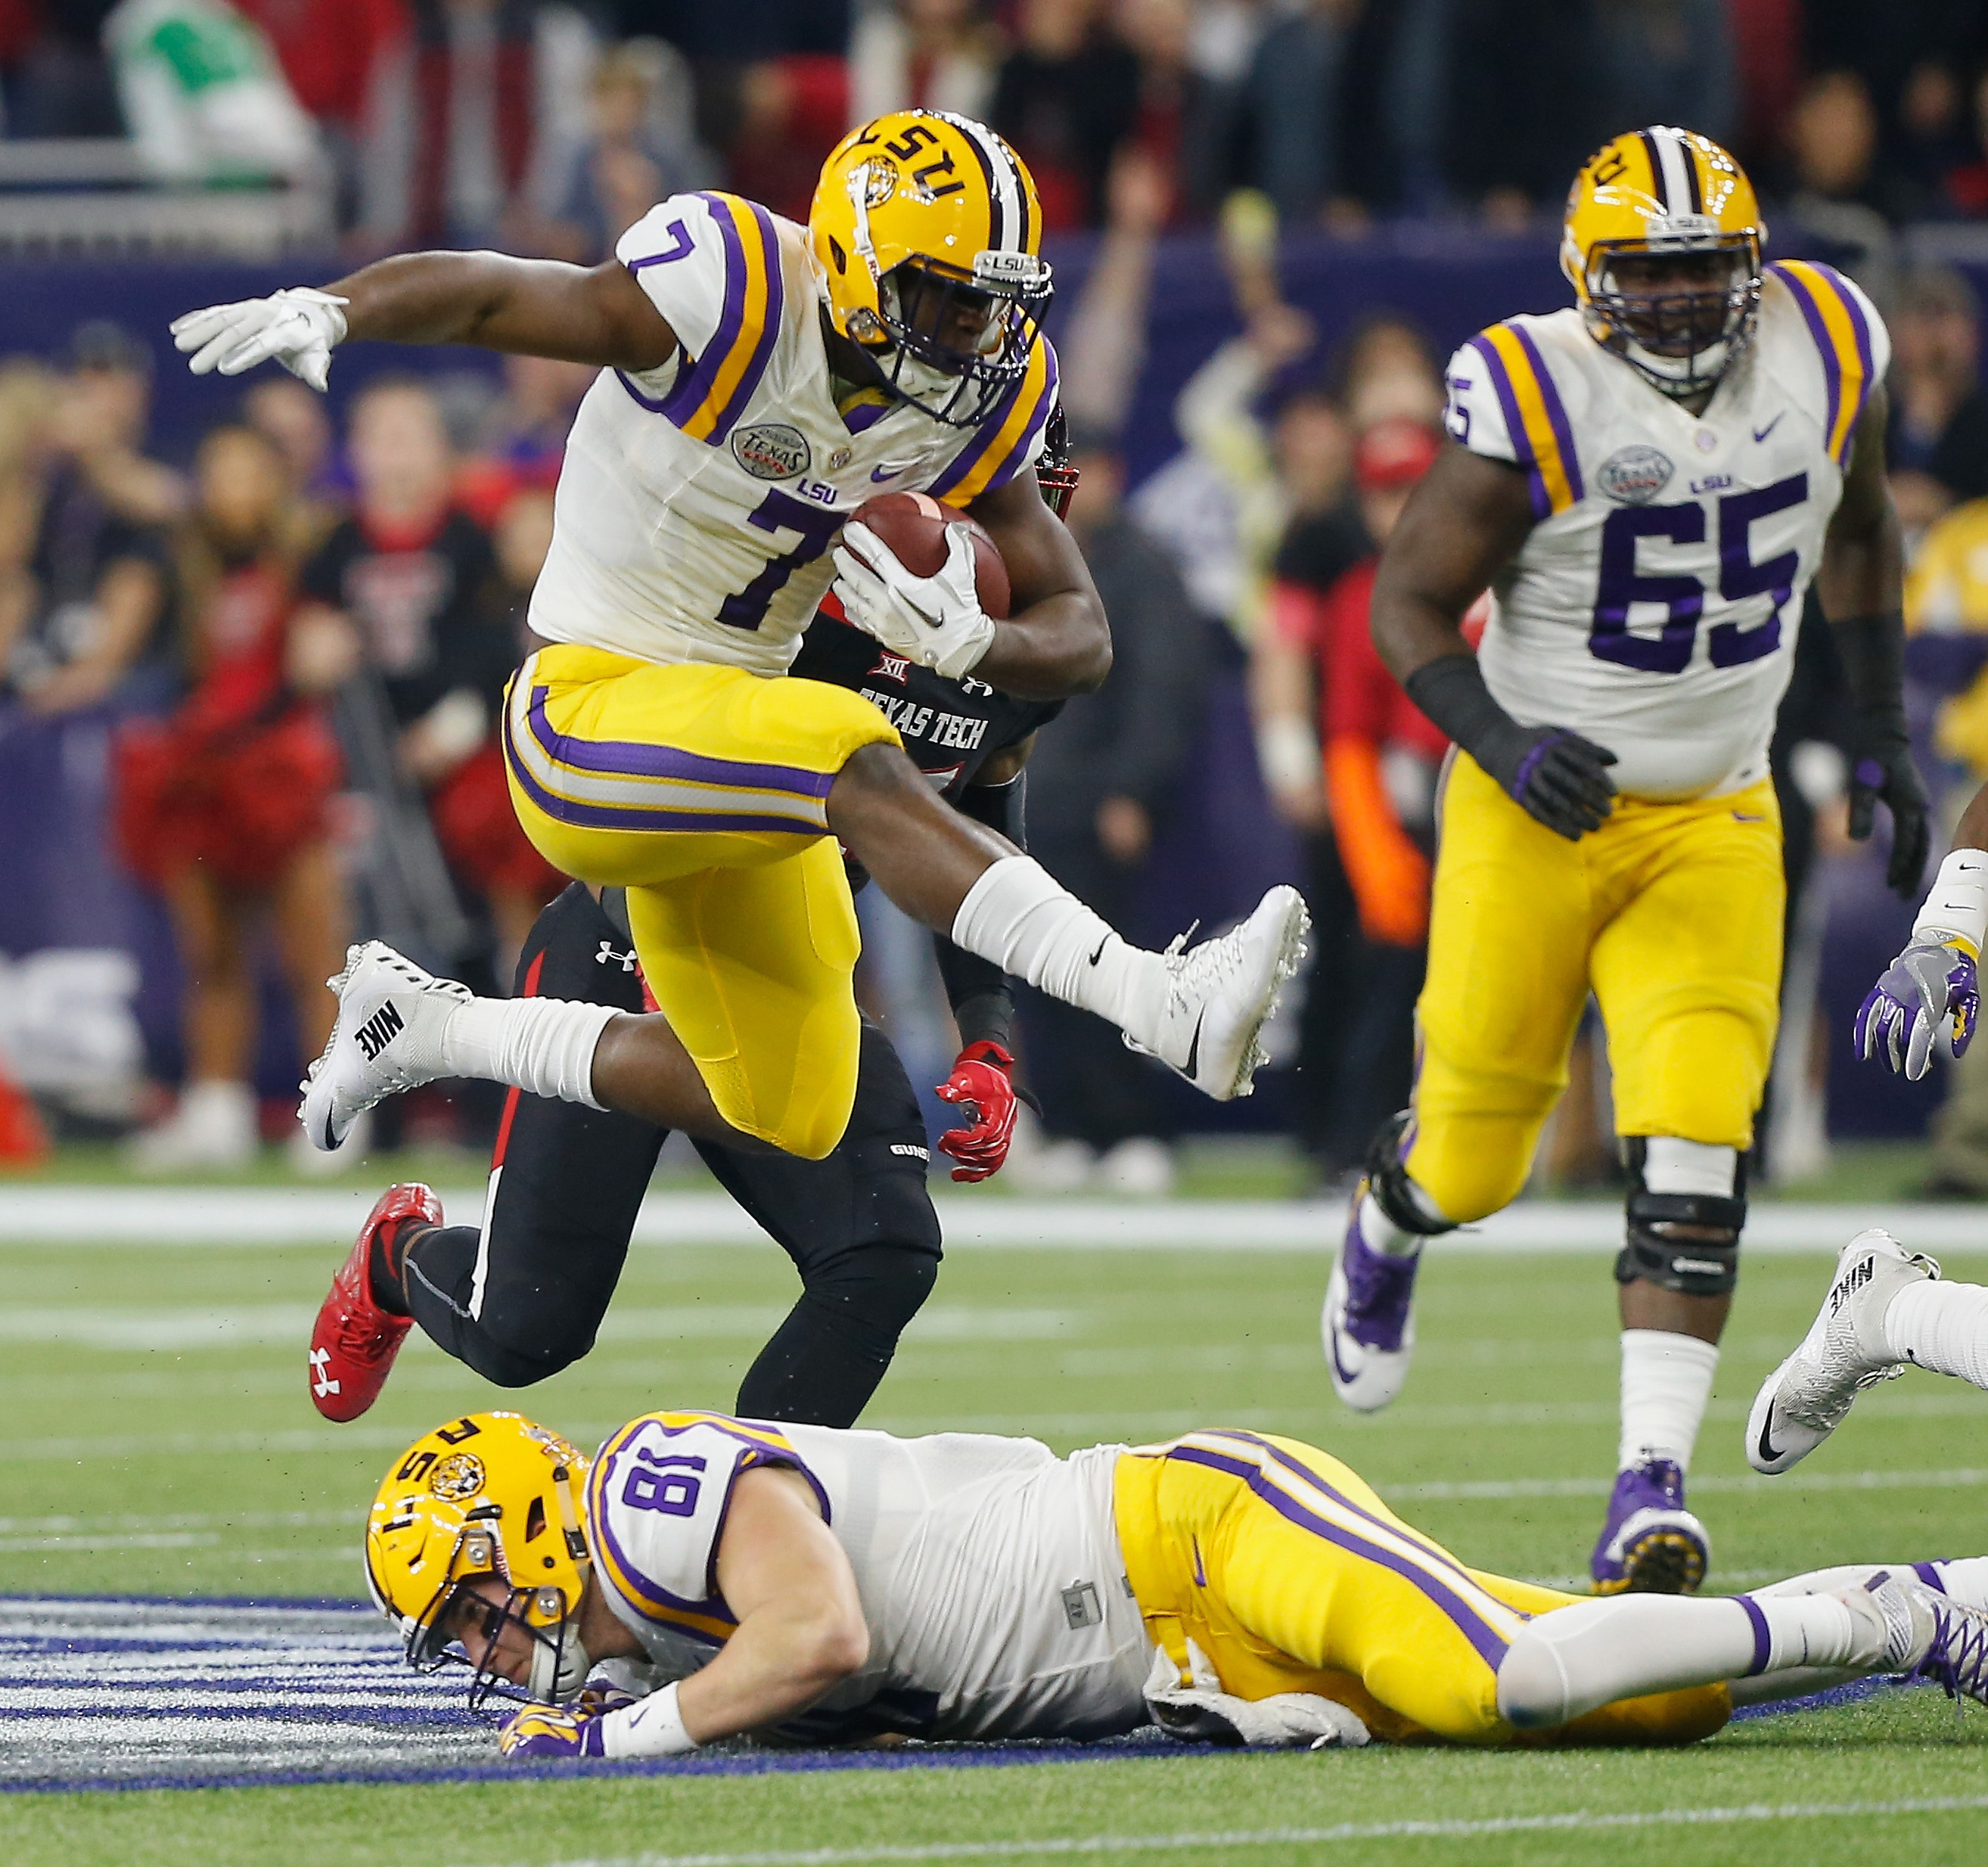 FILE - In this Dec. 29, 2015, file photo, LSU running back Leonard Fournette (7) hurdles tight end Colin Jeter (81) as he rushes against Texas Tech during the first half of the Texas Bowl NCAA college football game in Houston. All eyes are on Fournette as